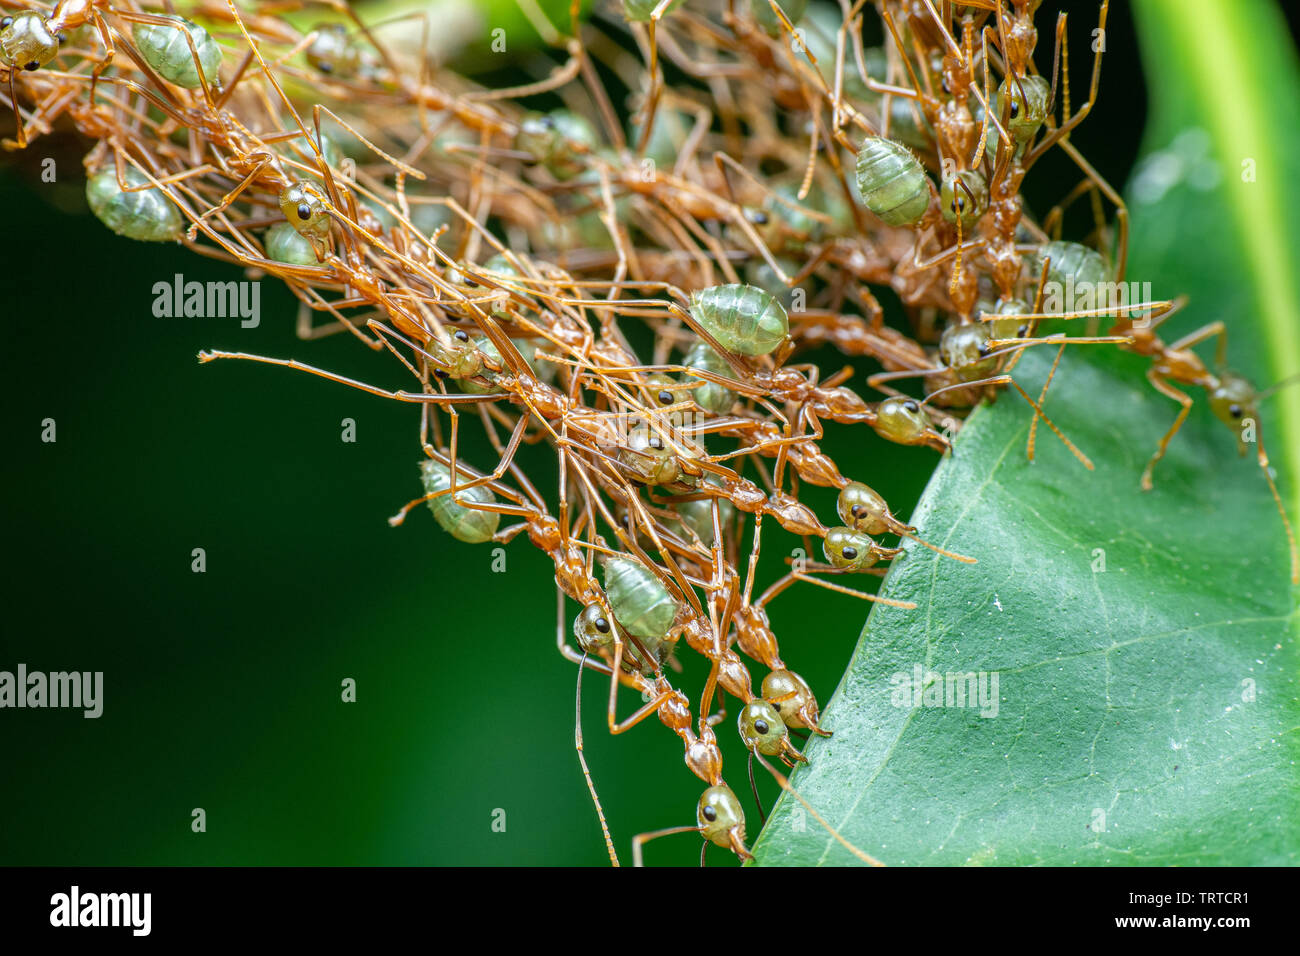 Oecophylla smaragdina, green weaver ants, working together to sew leaves and make a nest - Stock Image